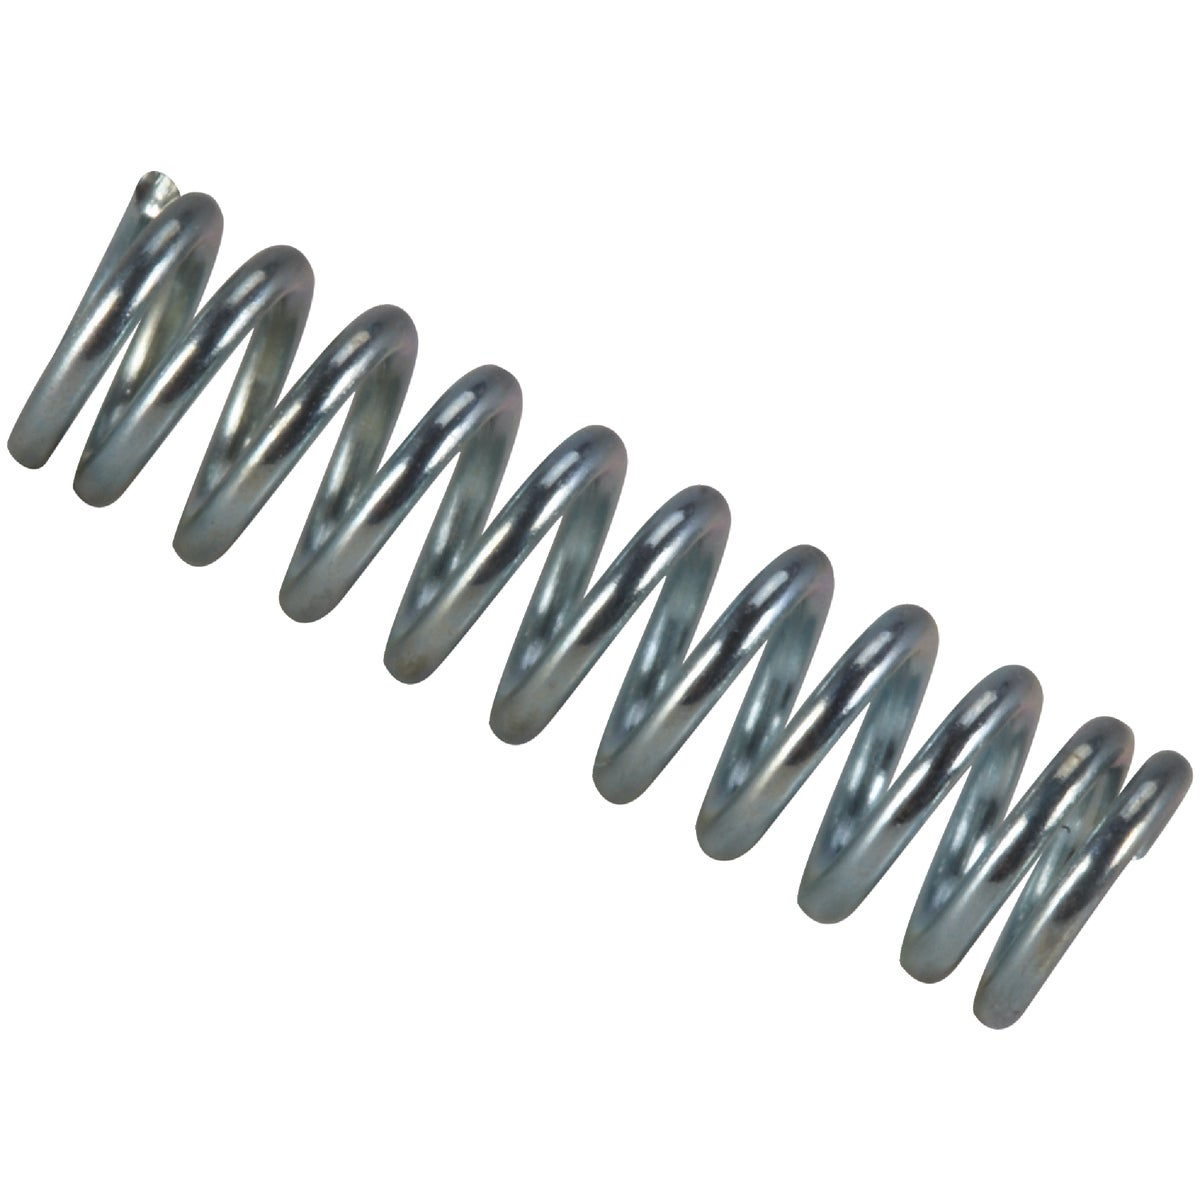 COMPRESSION SPRING - C-520 by Century Spring Corp